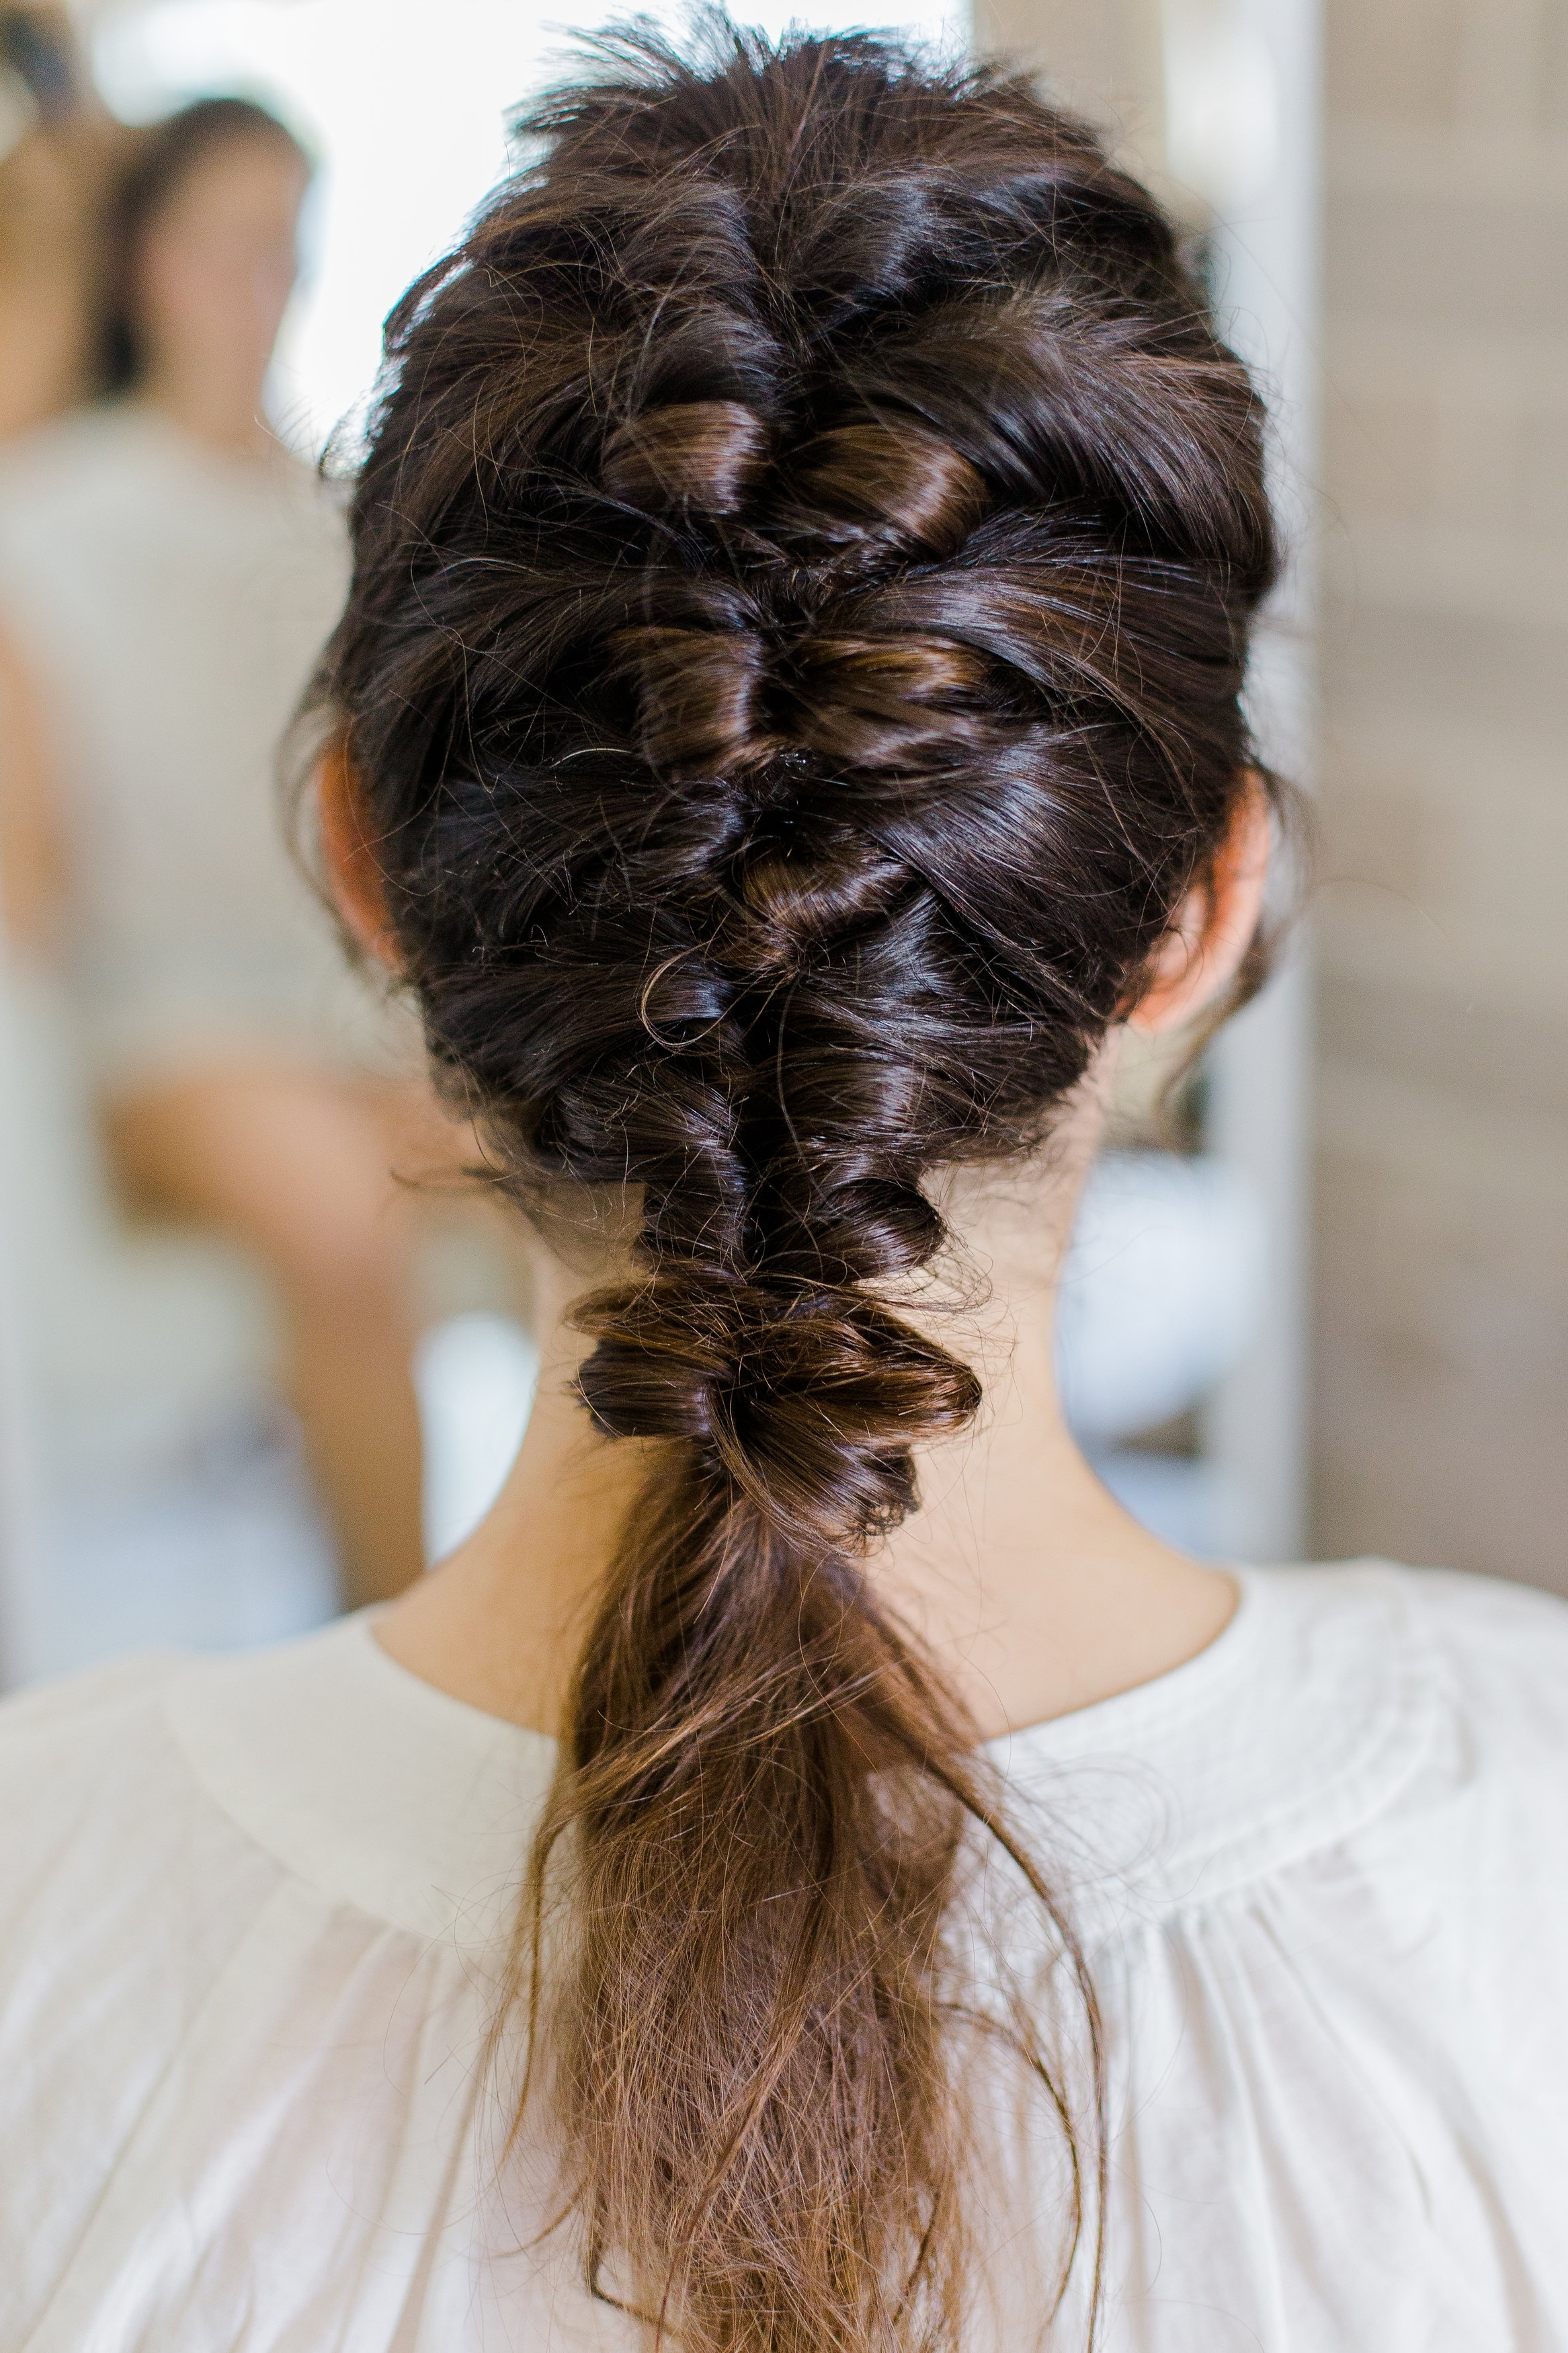 Recent Braided Boho Locks Pony Hairstyles Intended For Boho Braids  Hair Tutorial – Beijos Events (Gallery 17 of 20)